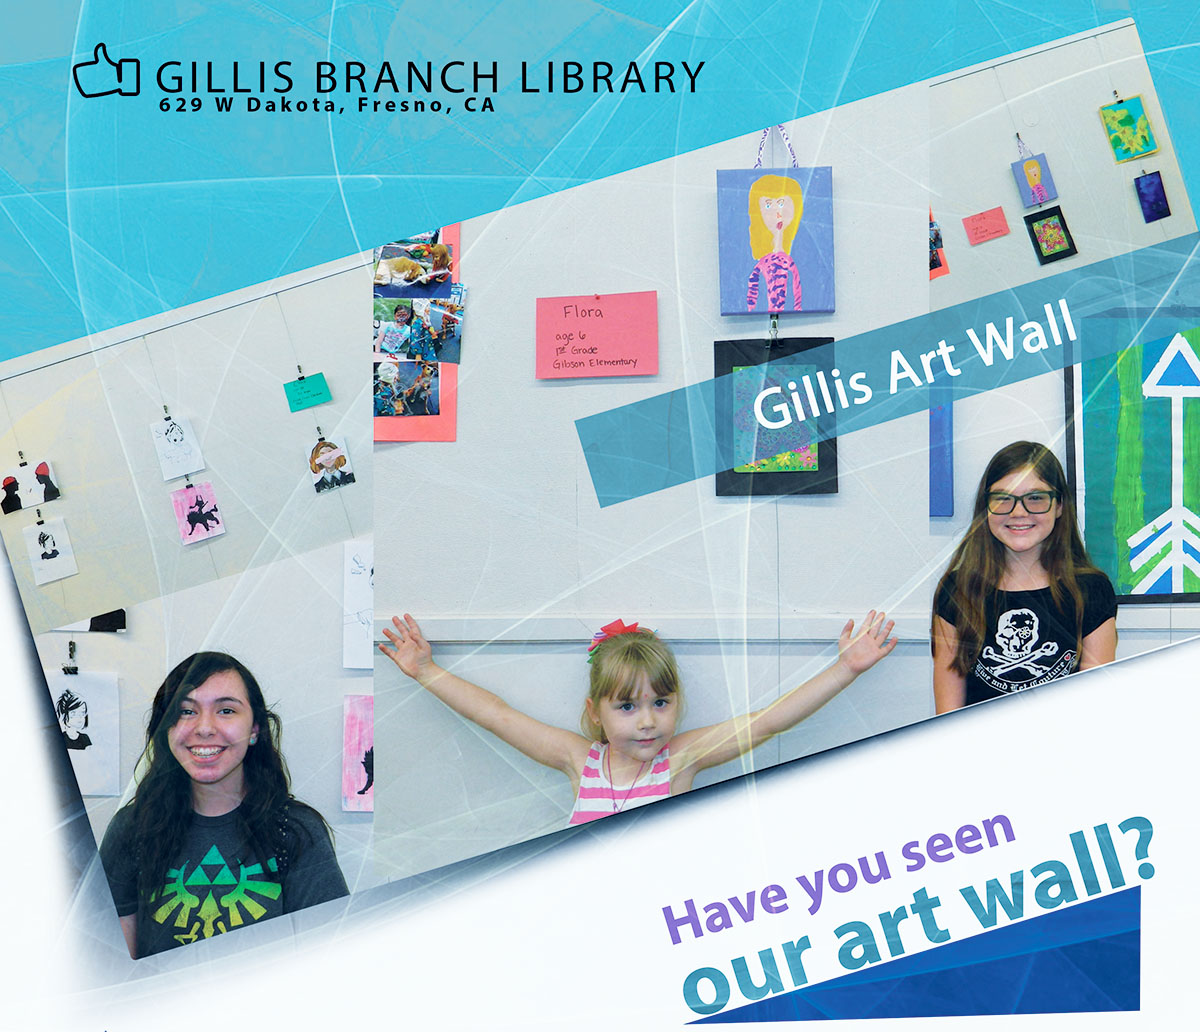 Gillis Branch Art Wall